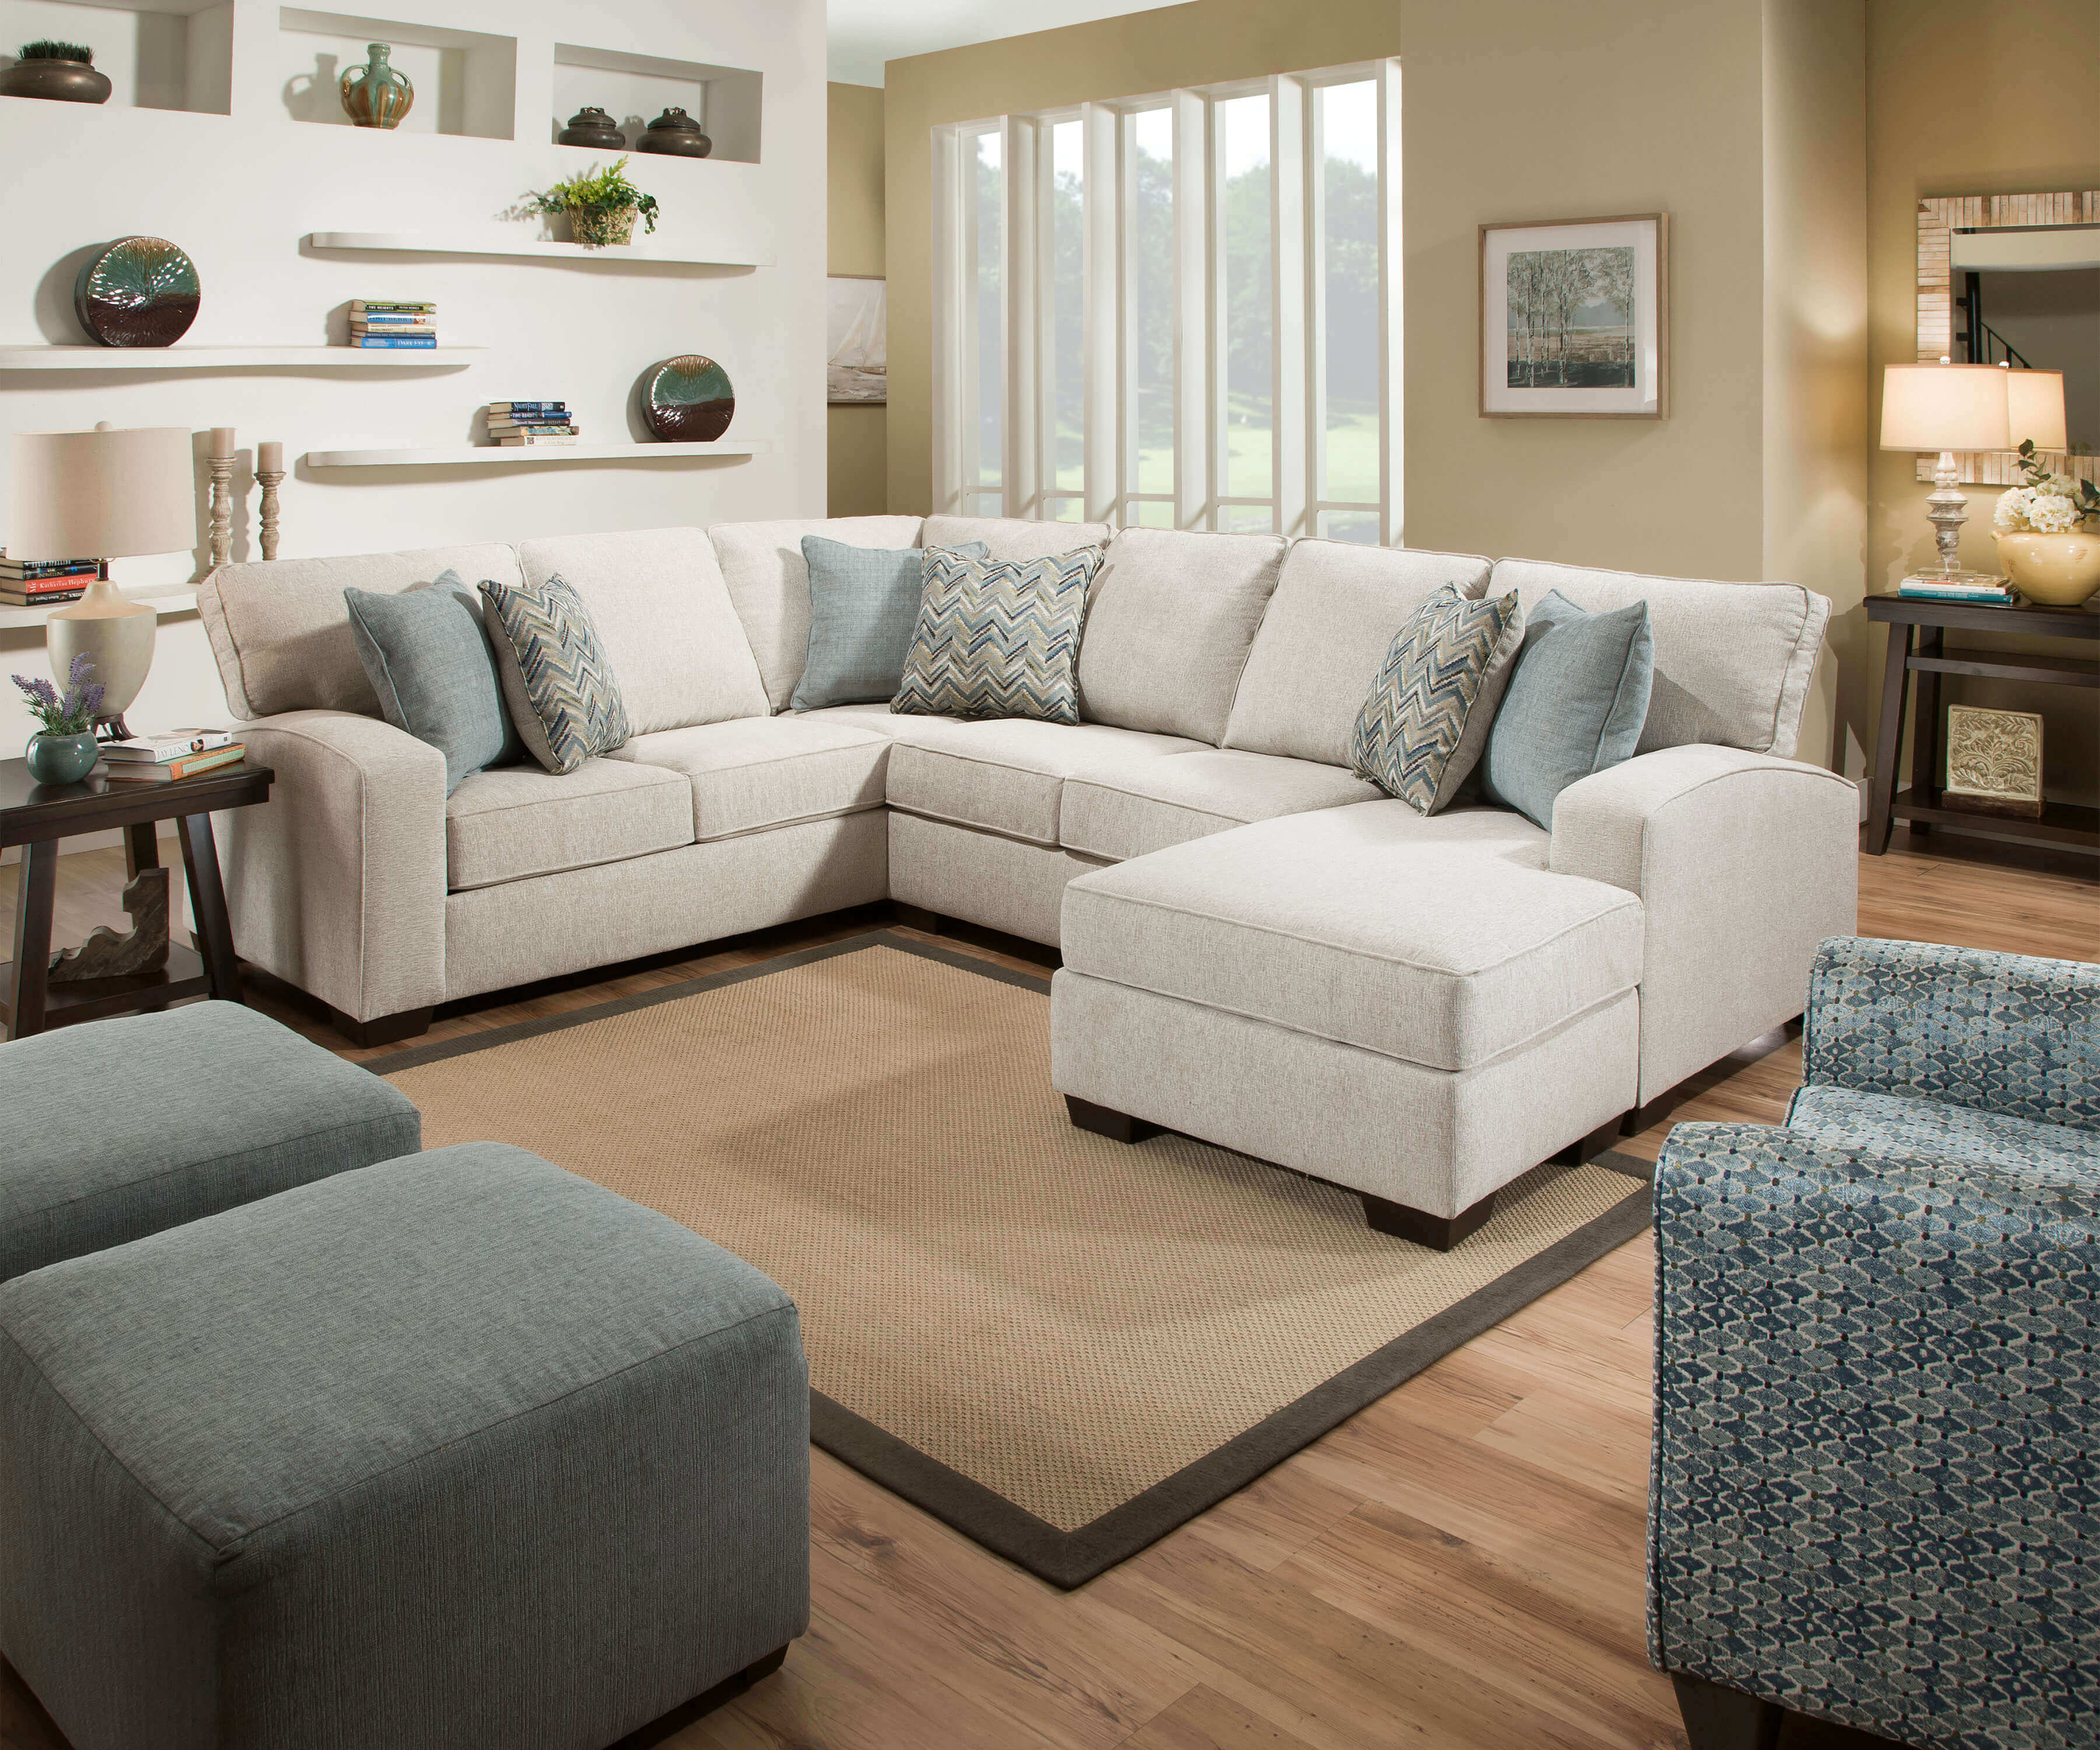 Phenomenal 7077 Endurance Grain Sectional With Chaise Gmtry Best Dining Table And Chair Ideas Images Gmtryco